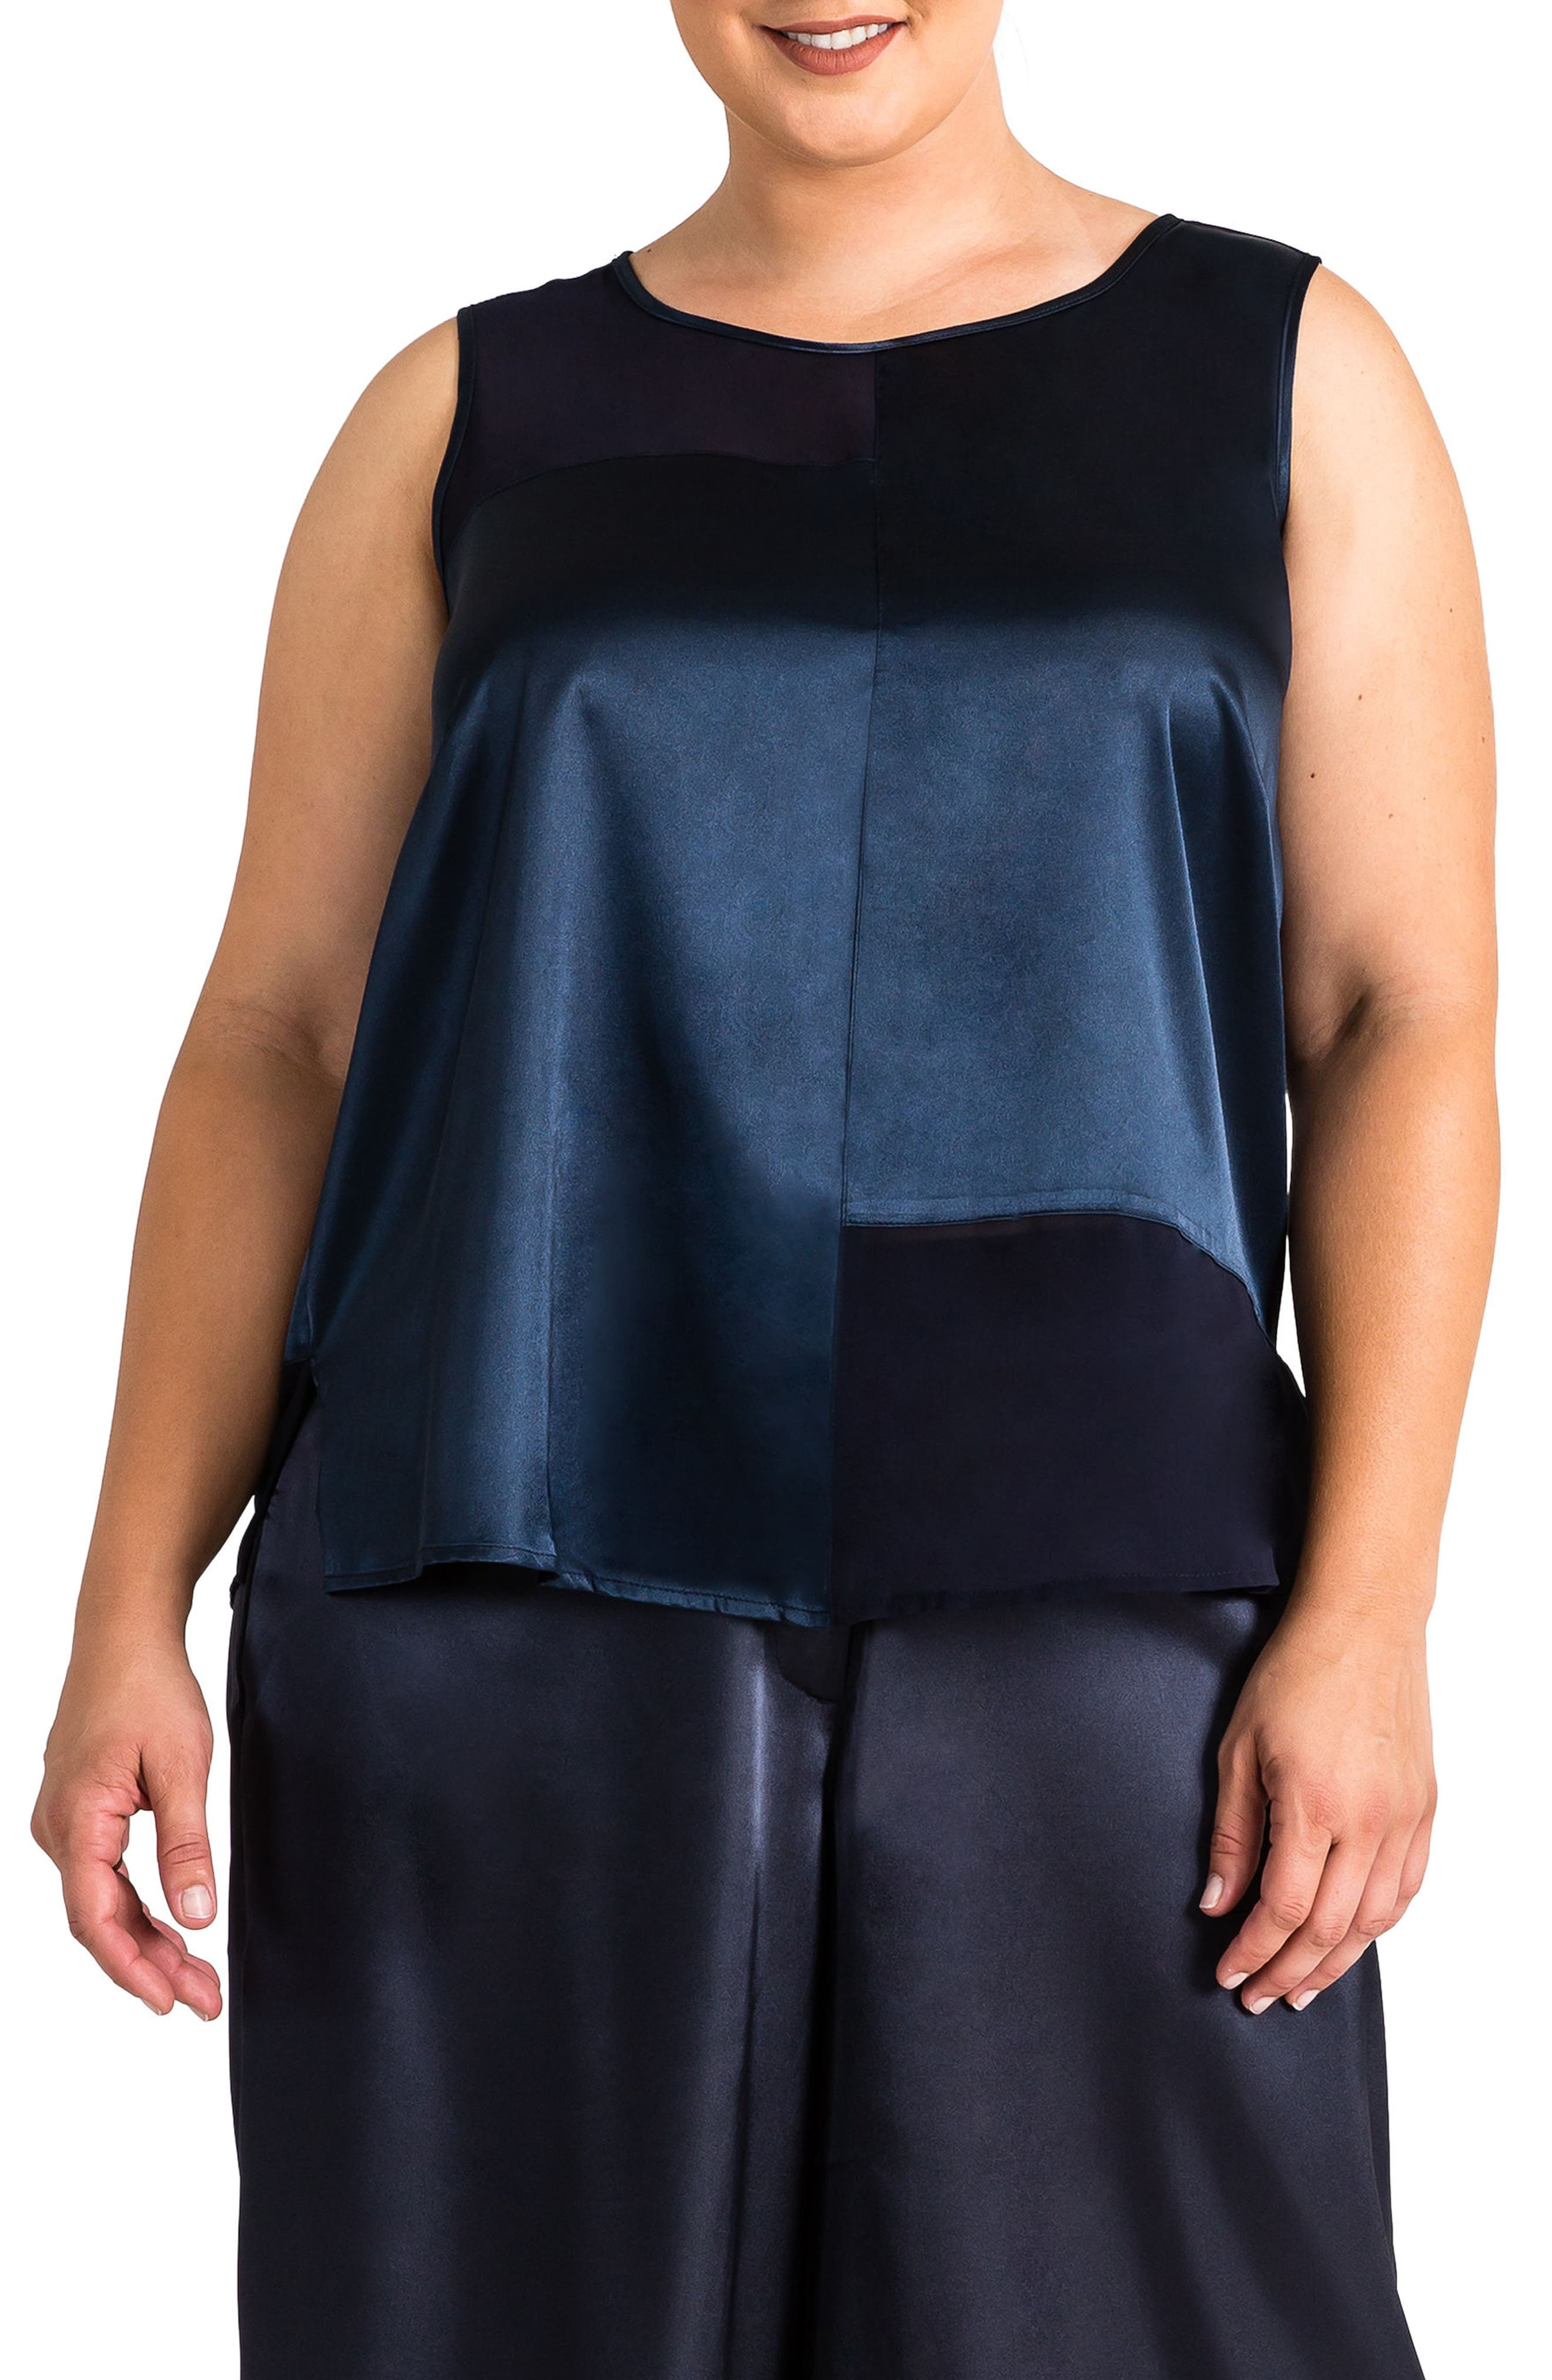 Jenny Sheer Inset Top,                         Main,                         color, MIDNIGHT BLUE